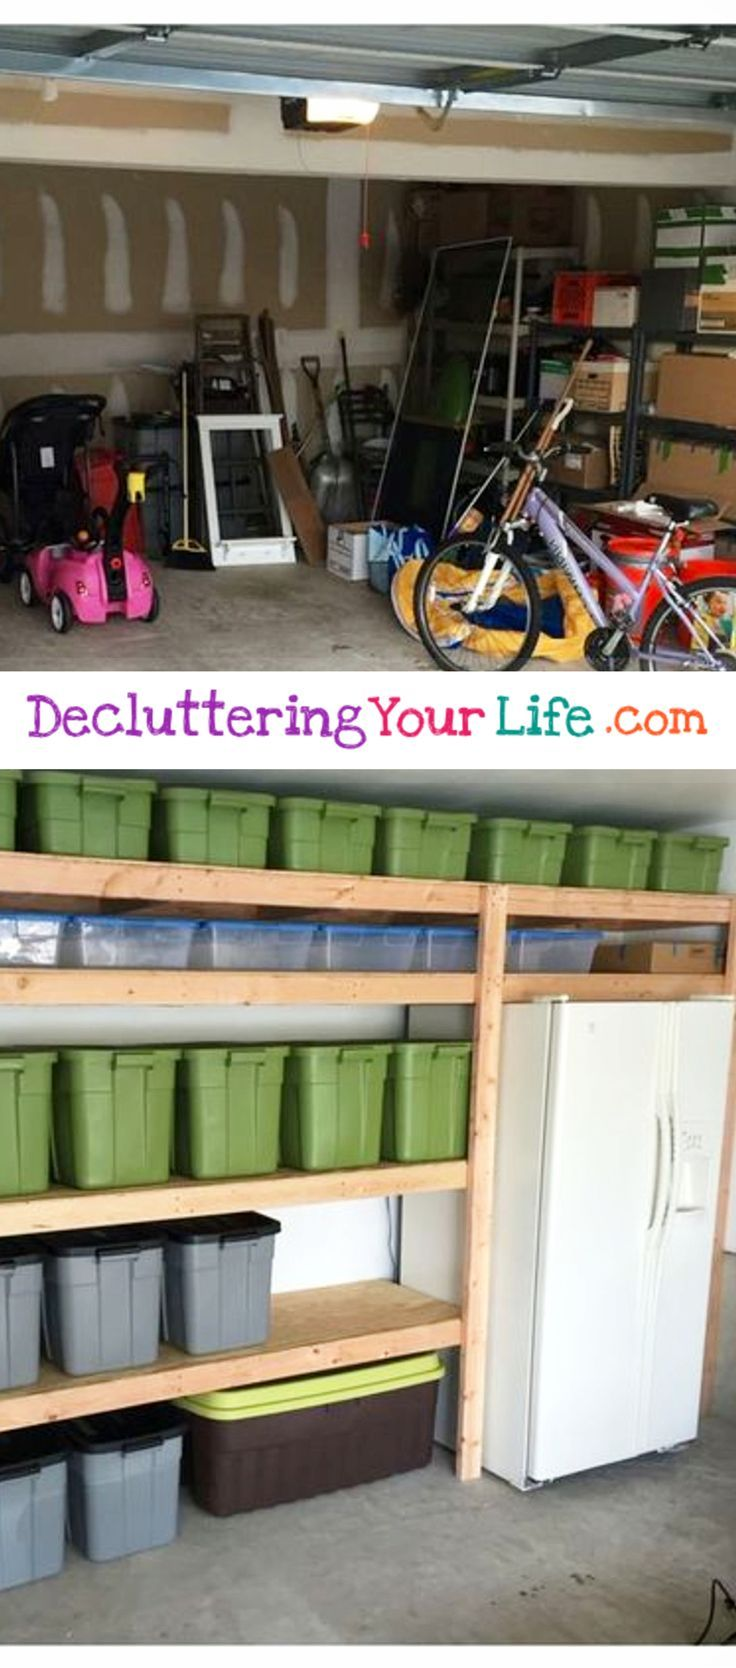 Garage Organization - 5 Quick and Cheap Garage Organizing Ideas